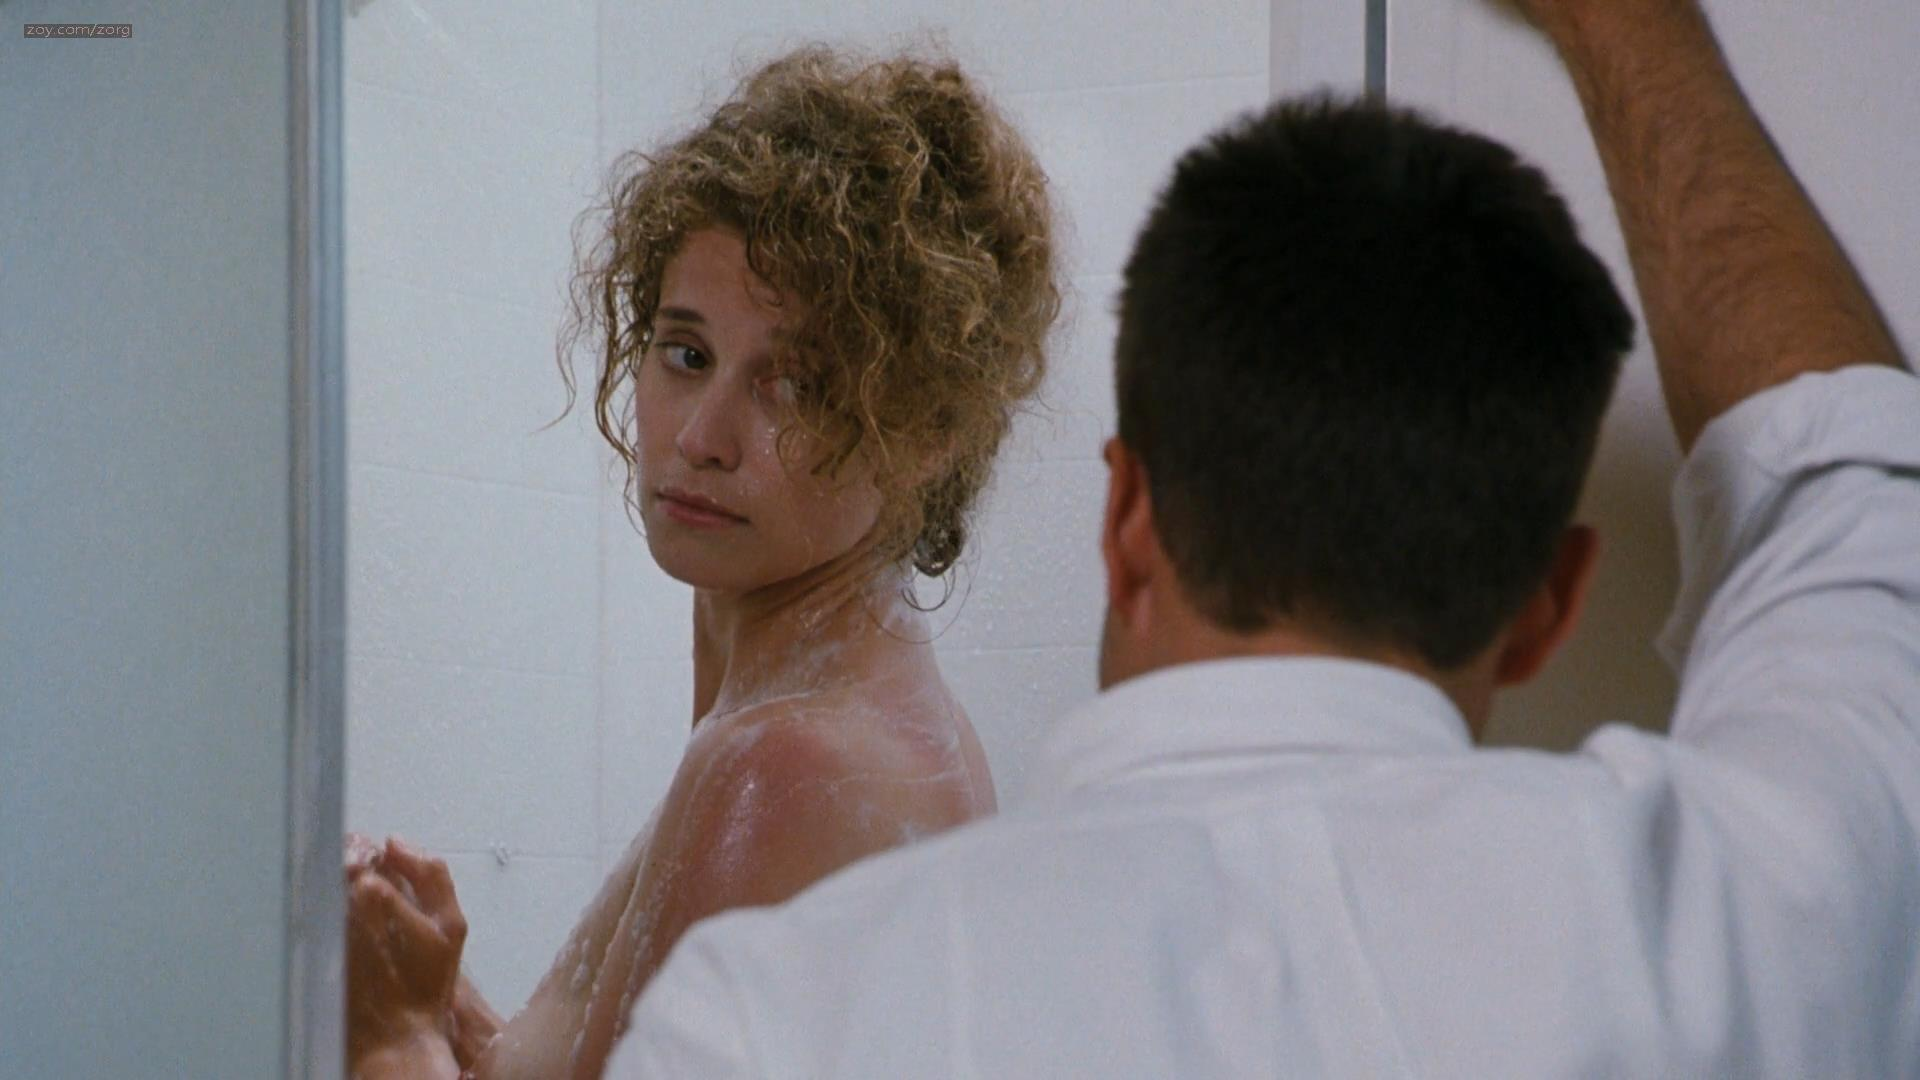 Nancy Travis nude brief nipple in the shower and Faye Grant nude topless and sex - Internal Affairs (1990) hd1080p